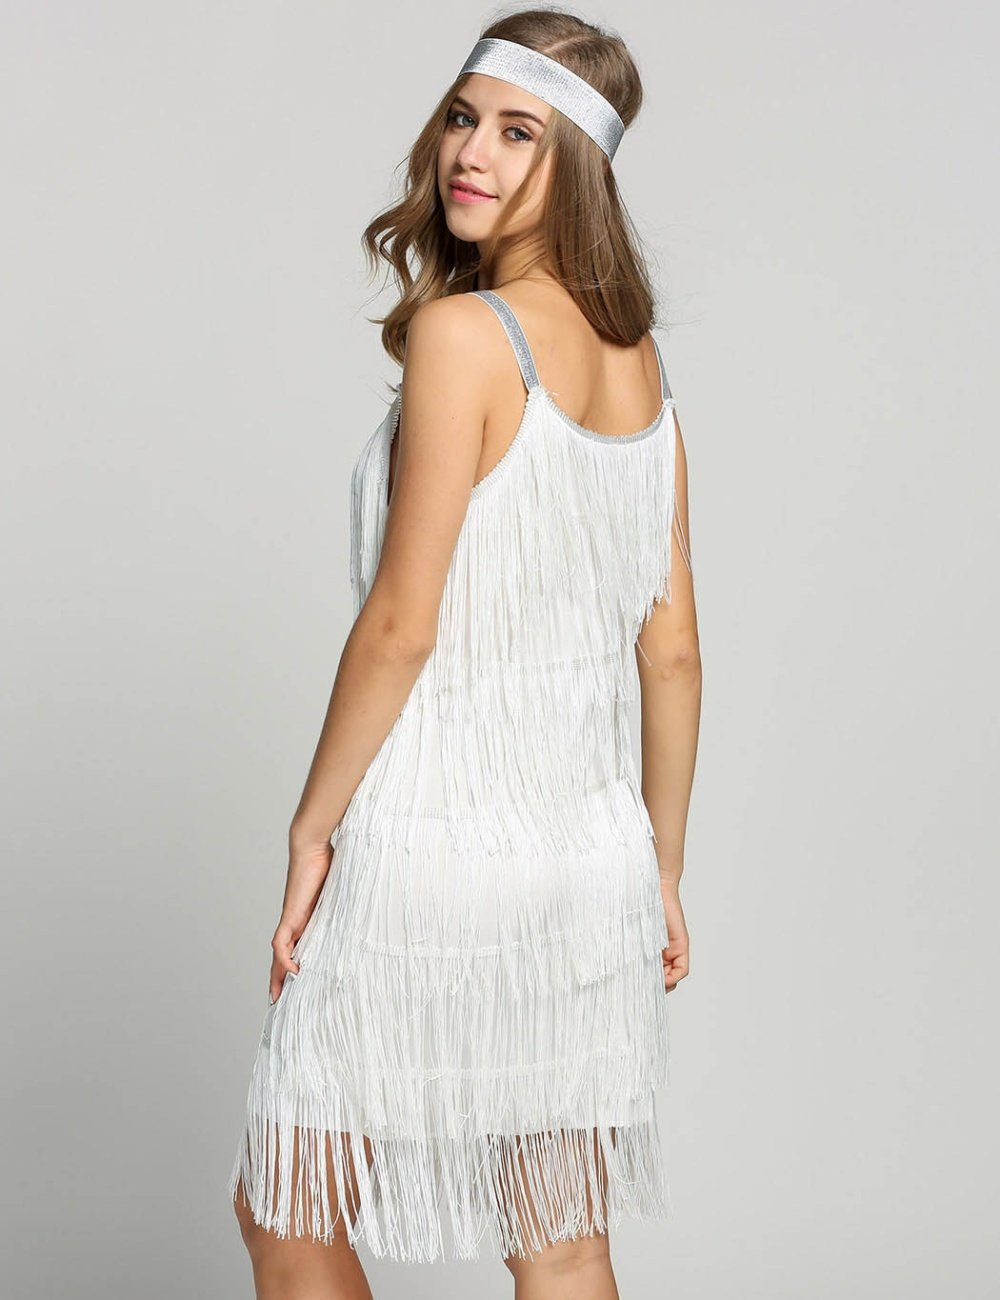 flapper fringe dress (10)